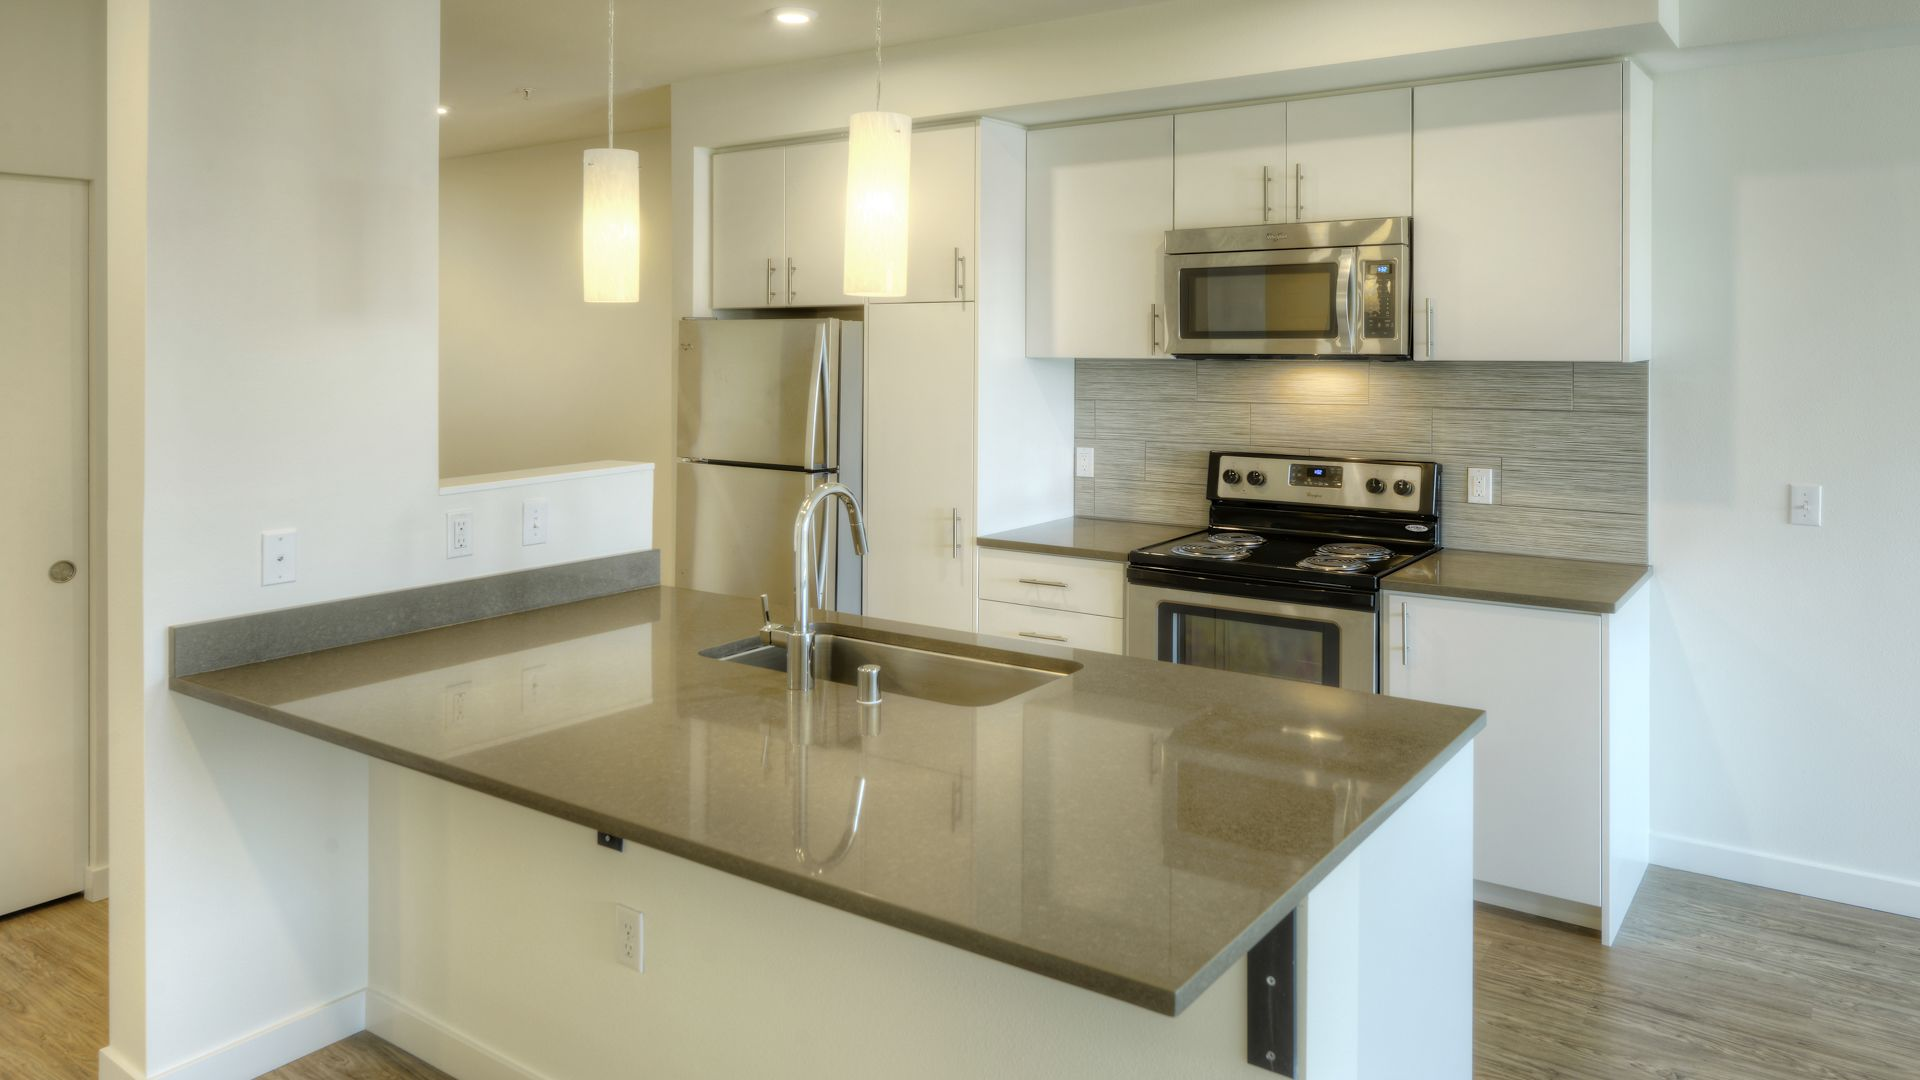 B&q Kitchen Design Jobs Junction 47 Apartments Reviews In West Seattle 4715 42nd Ave Sw